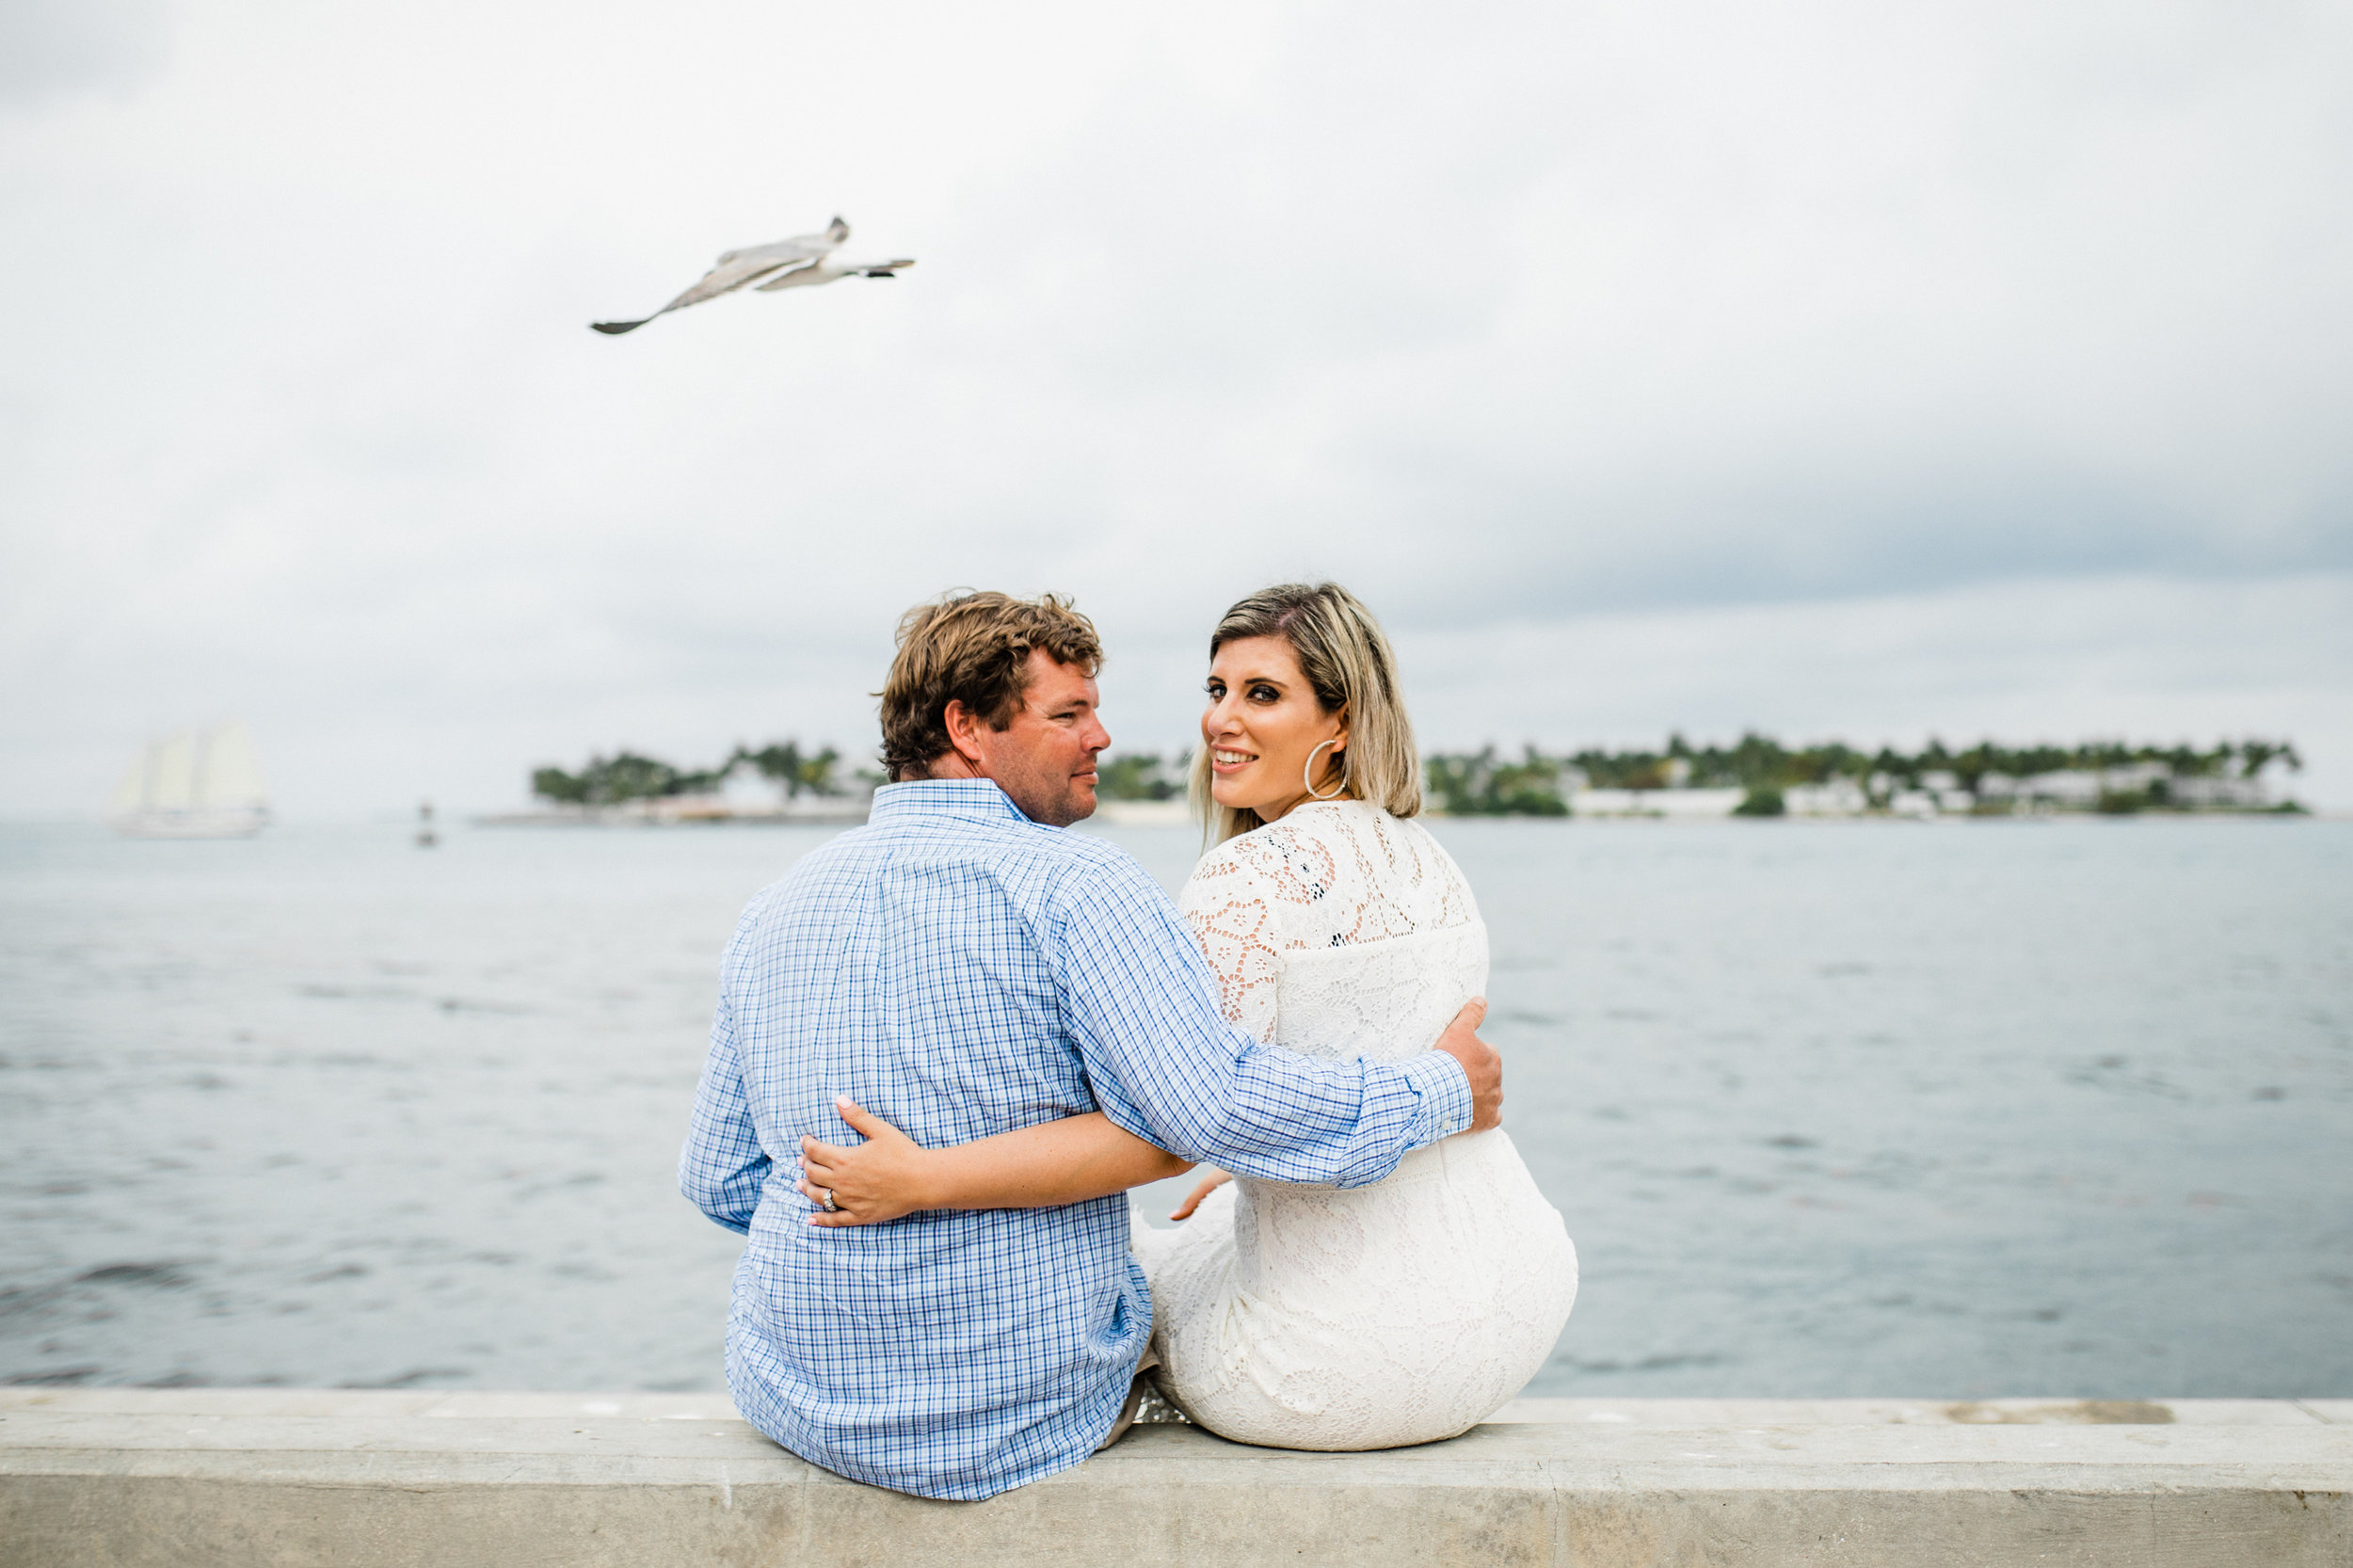 lena perkins, key west, key west photography, key west engagement, key west wedding, key west vacation, destination wedding, family photography 50.jpg